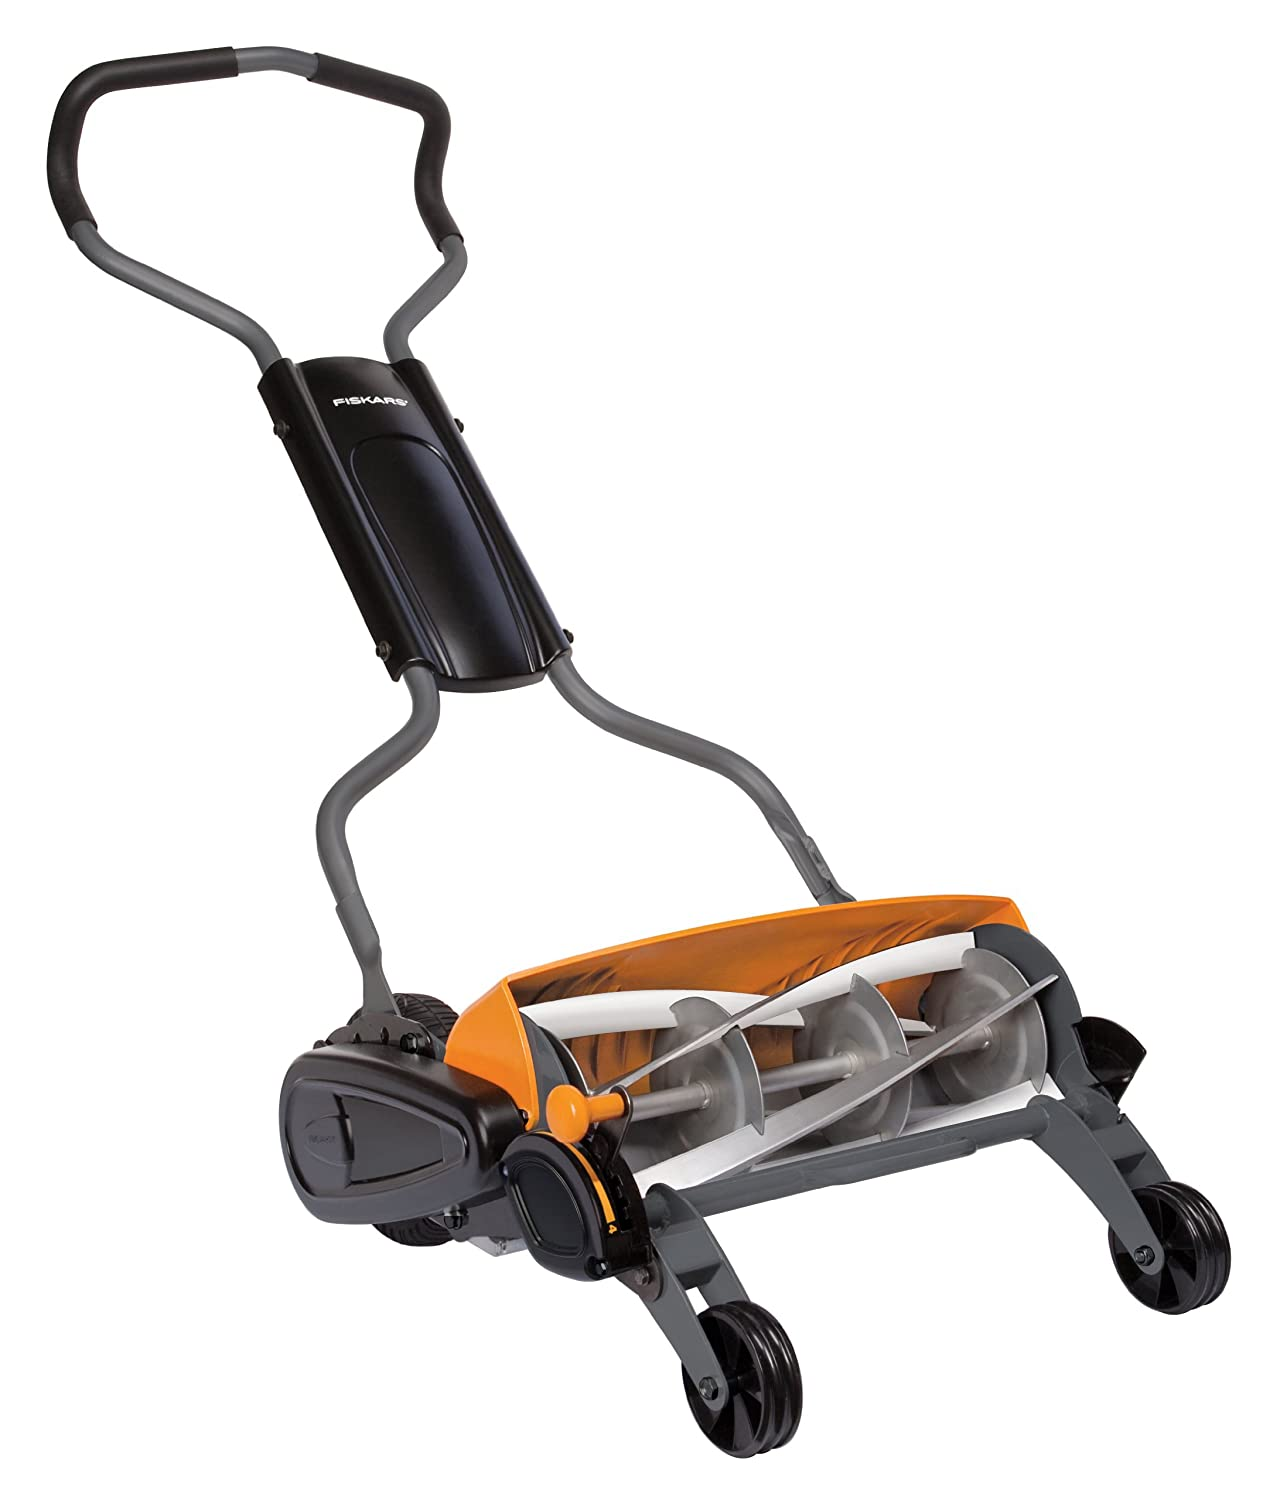 Amazon Fiskars 18 Inch Staysharp Max Reel Mower Garden & Outdoor